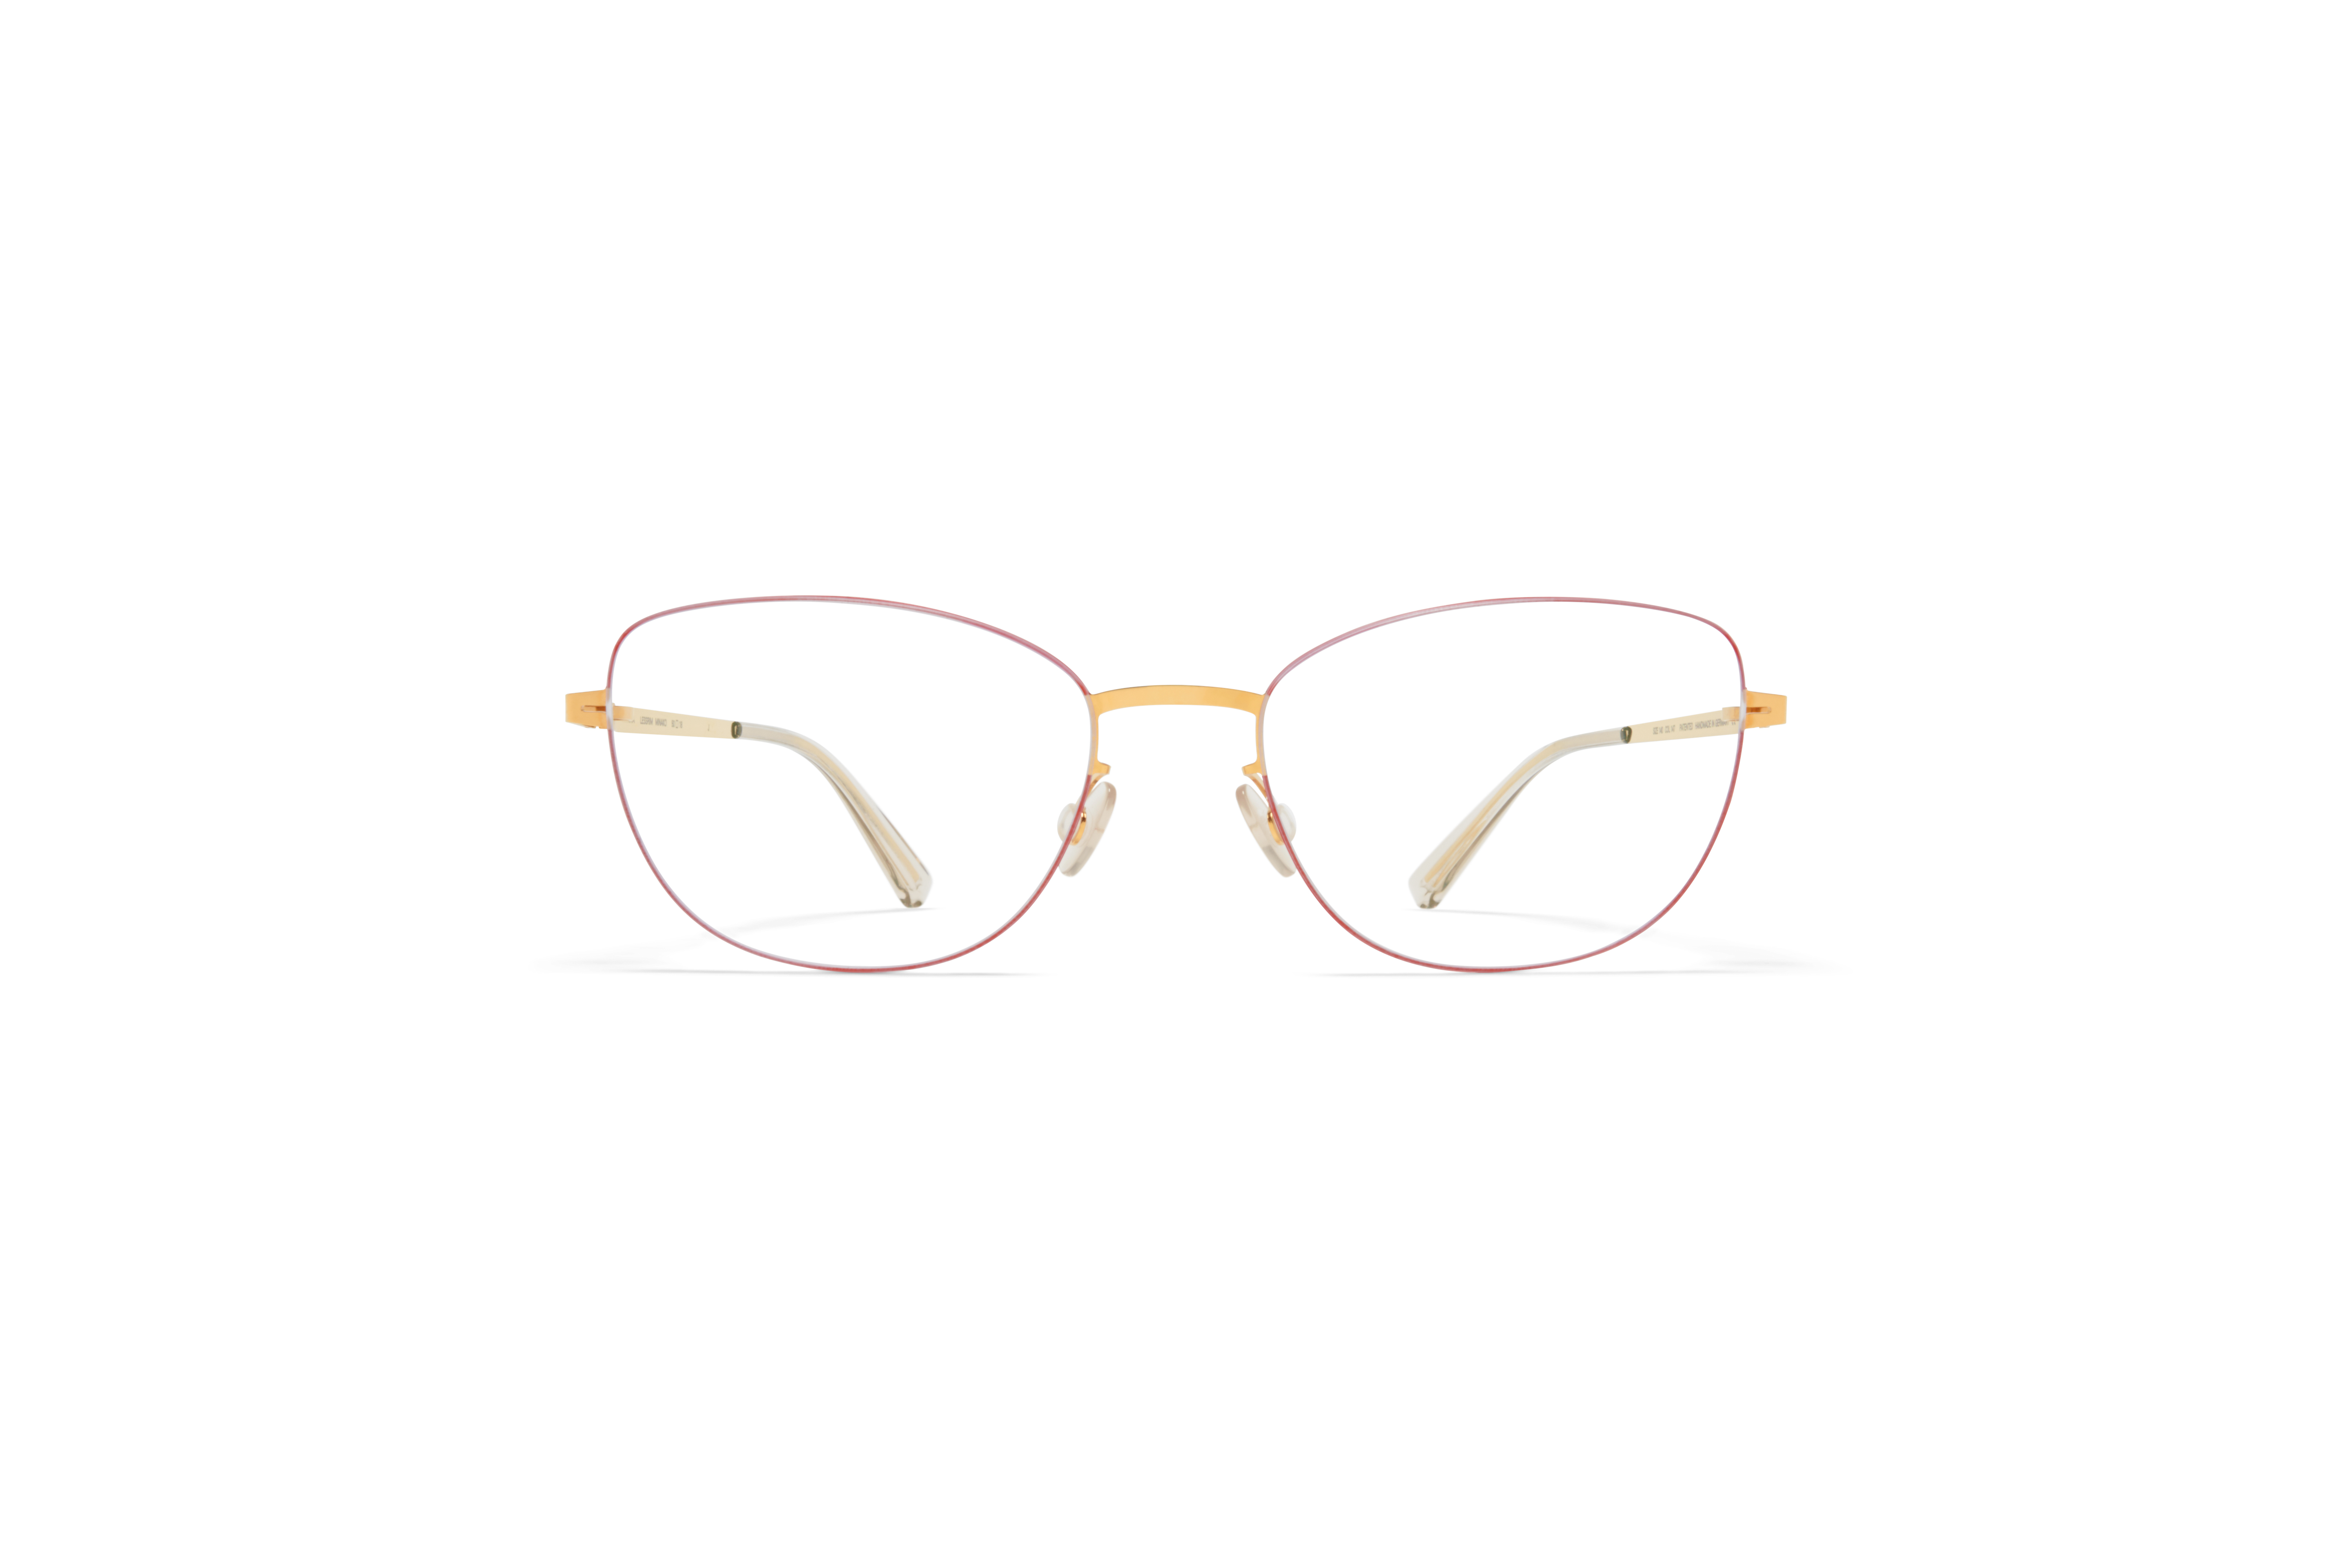 MYKITA Less Rim Rx Minako Gold Coral Red Clear